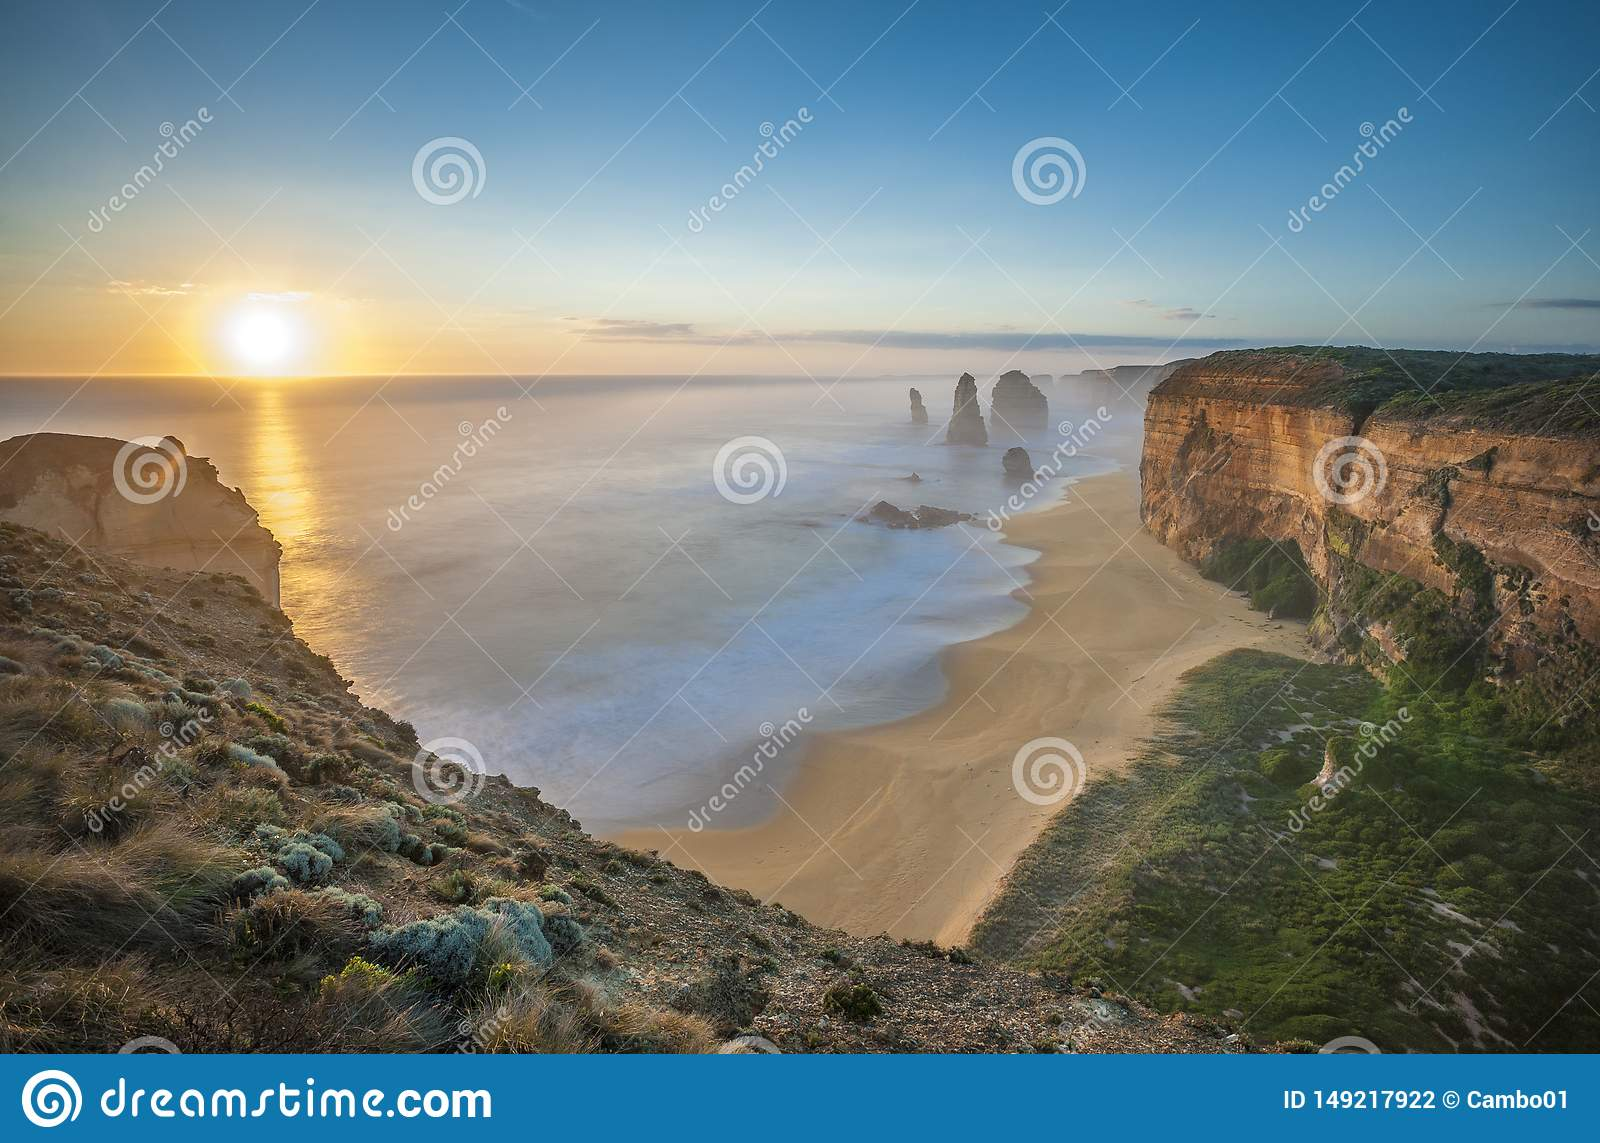 The 12 Apostles at sunset, Great Ocean Road, Australia